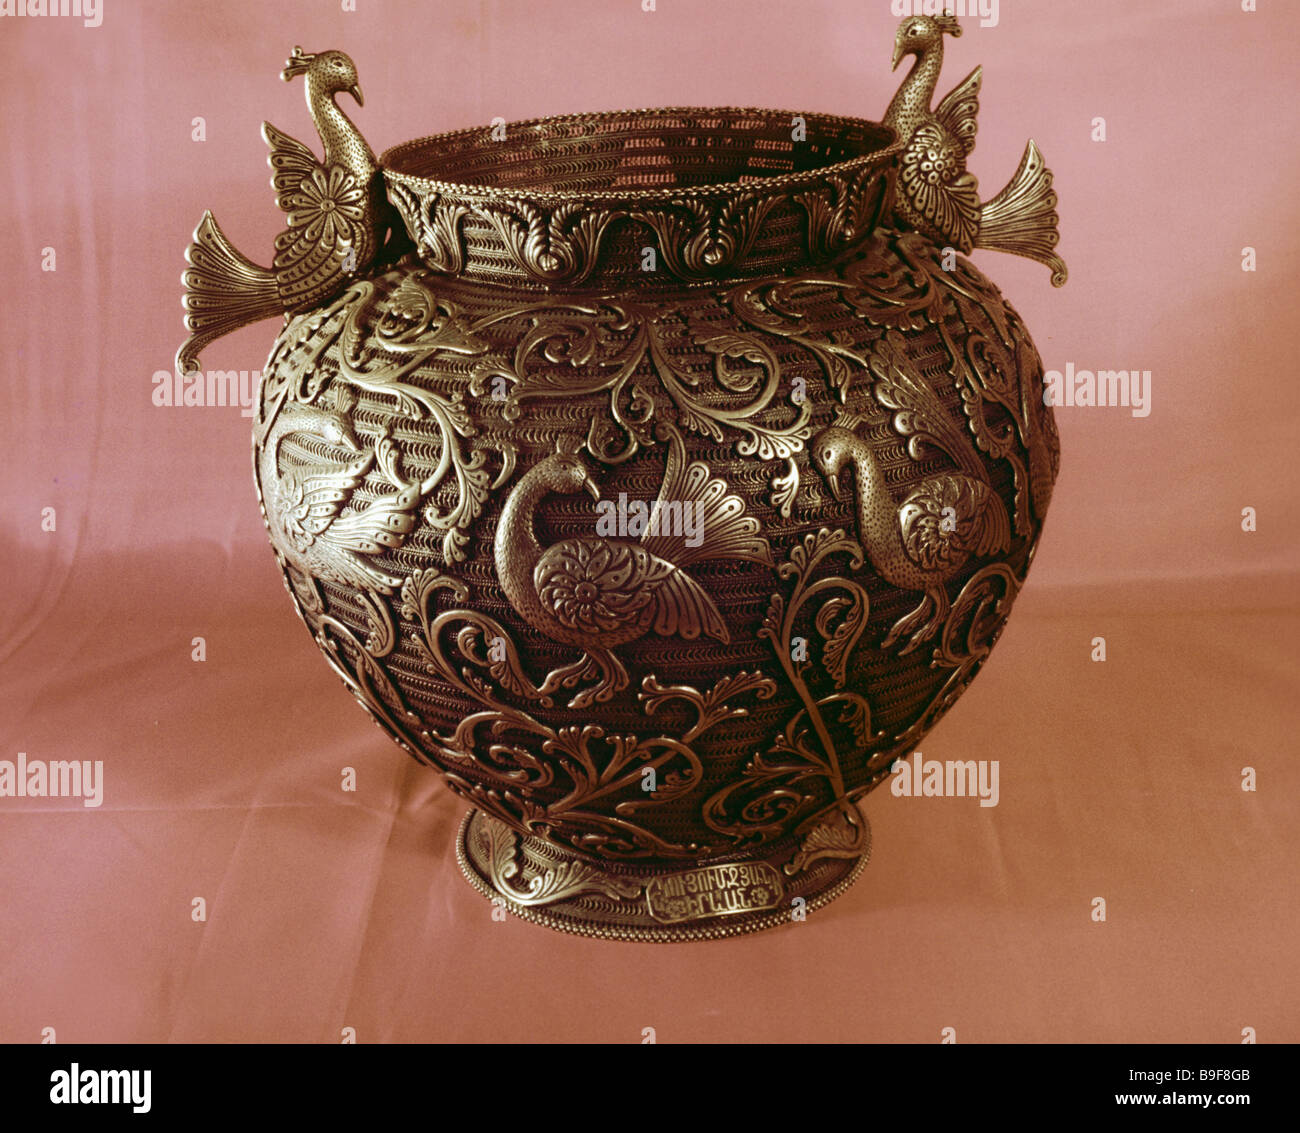 Silver N Stock Photos & Silver N Stock Images - Alamy on